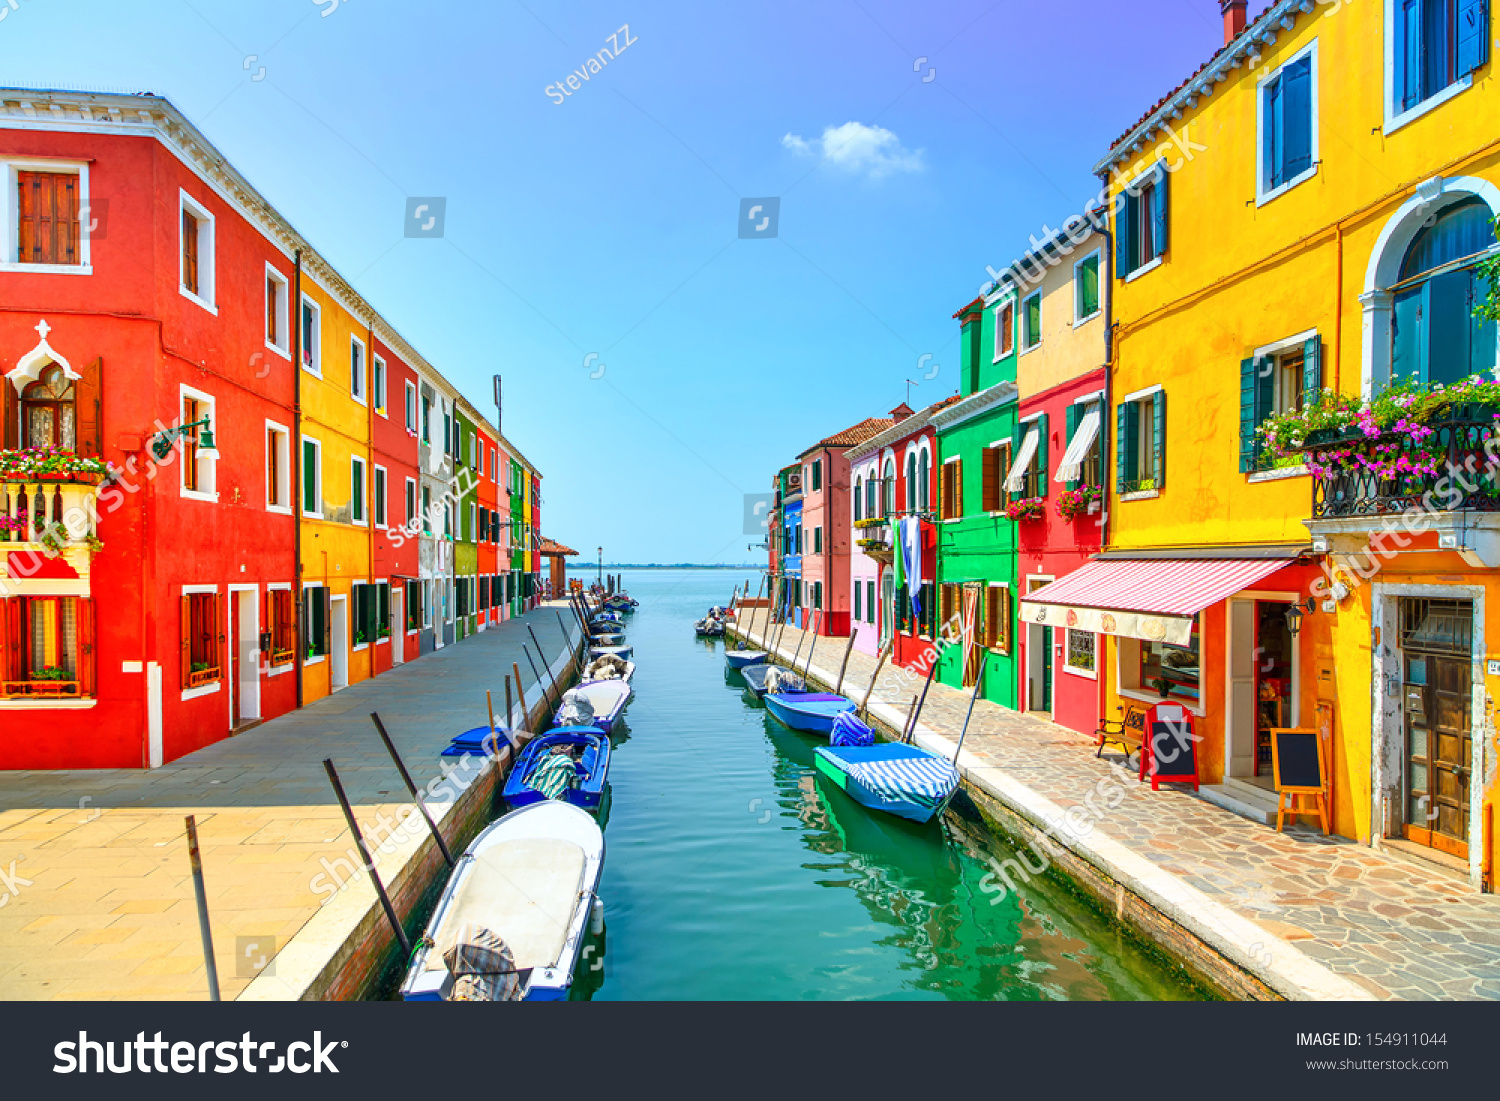 Venice Landmark Burano Island Canal Colorful Stock Photo